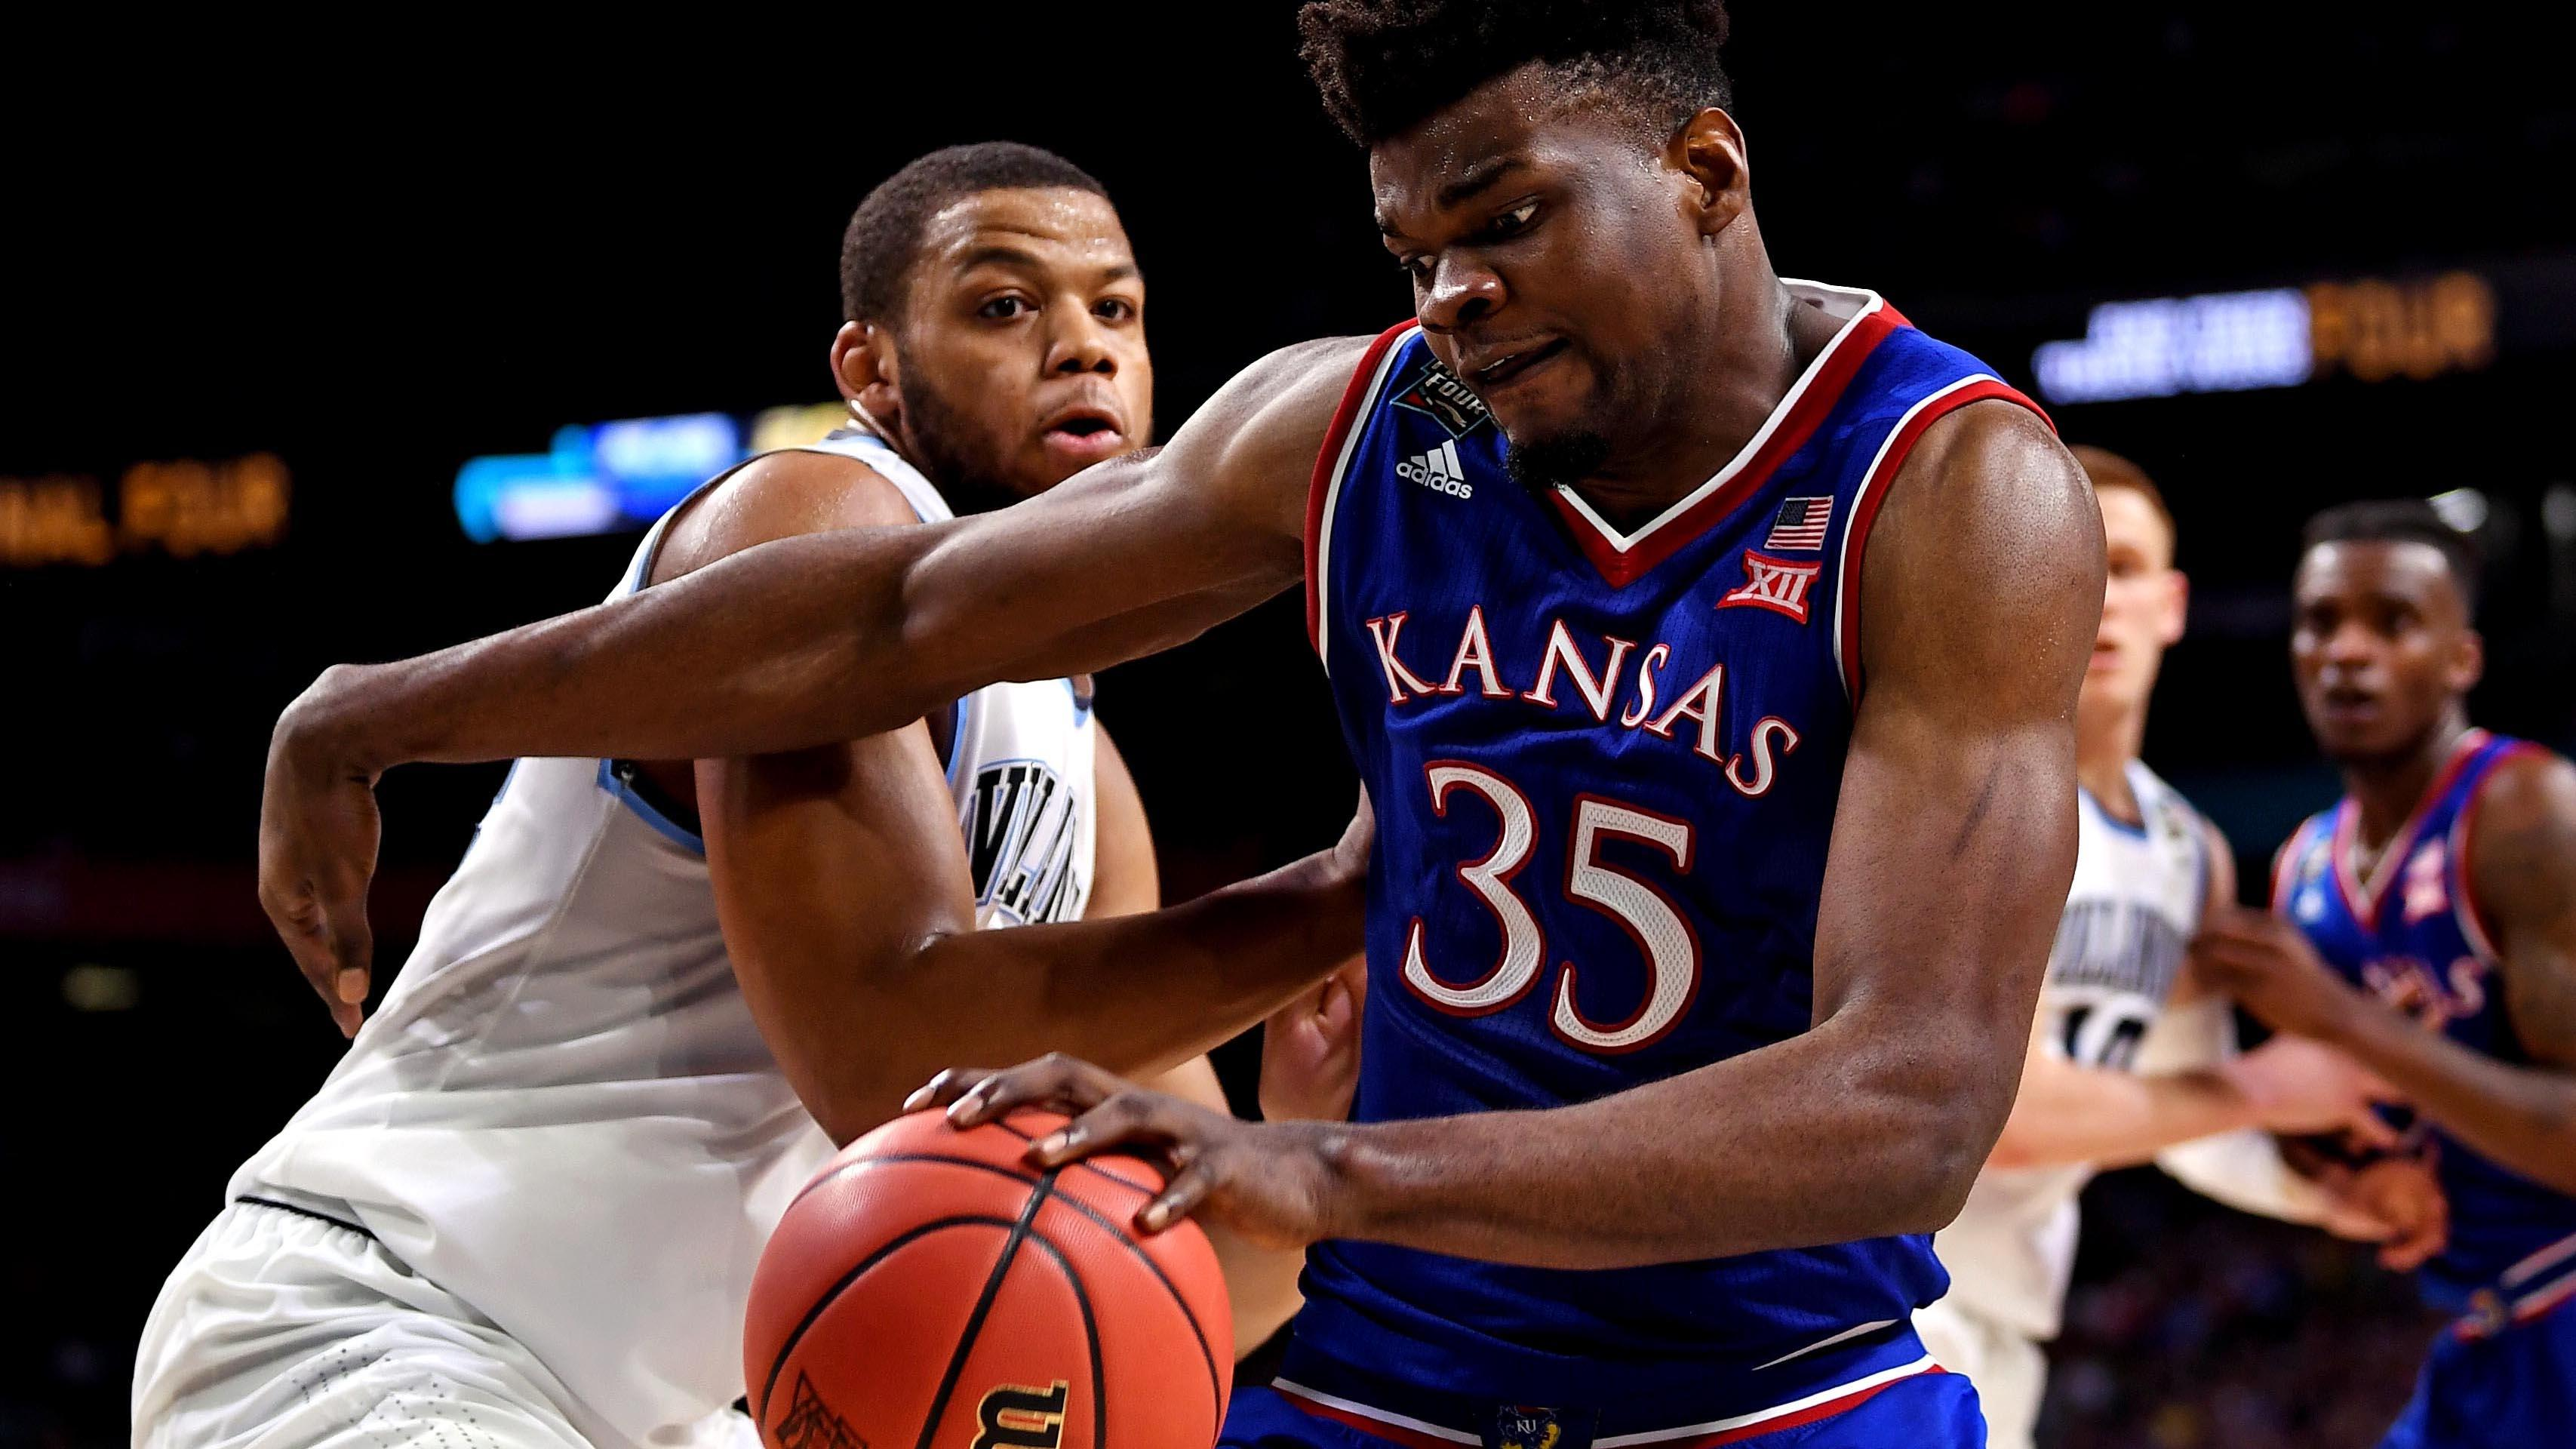 Kansas center Udoka Azubuike drives to the rim